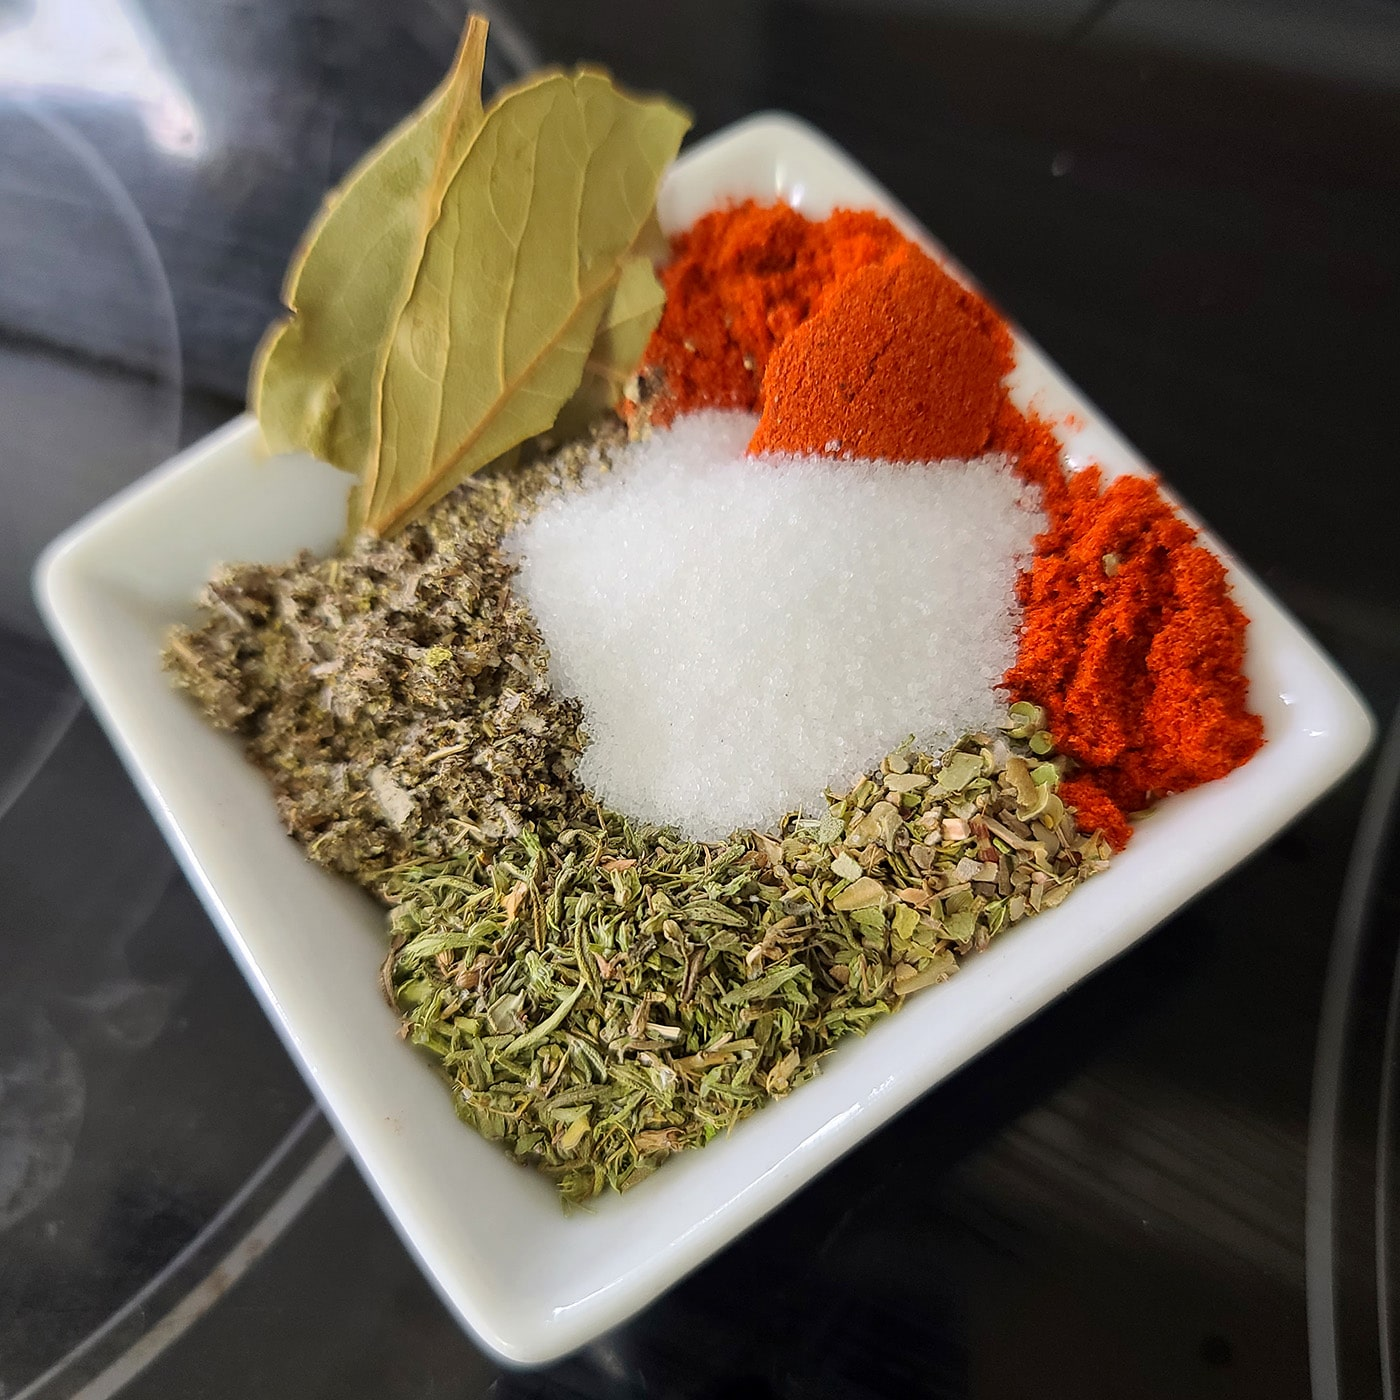 A small white bowl with the spices and bay leaves in it.